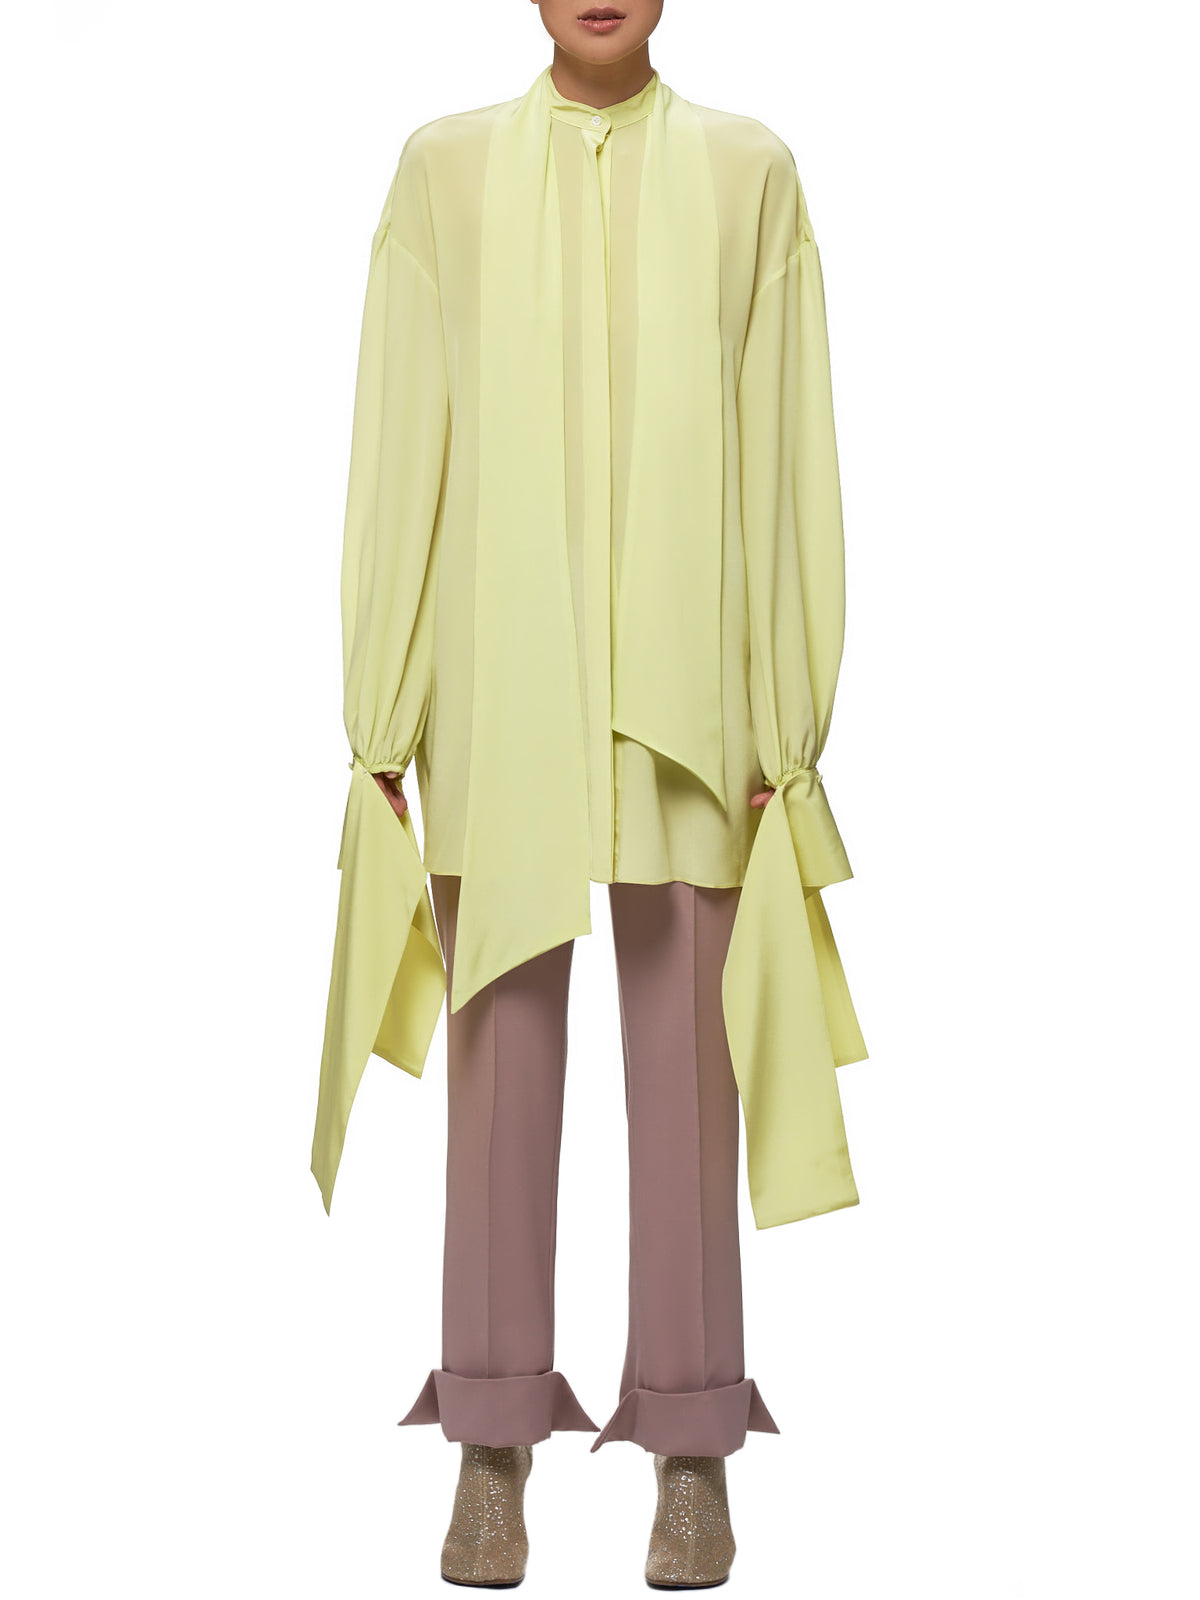 Draped Cuff Blouse (R0CA67-S-ACID-LEMON)